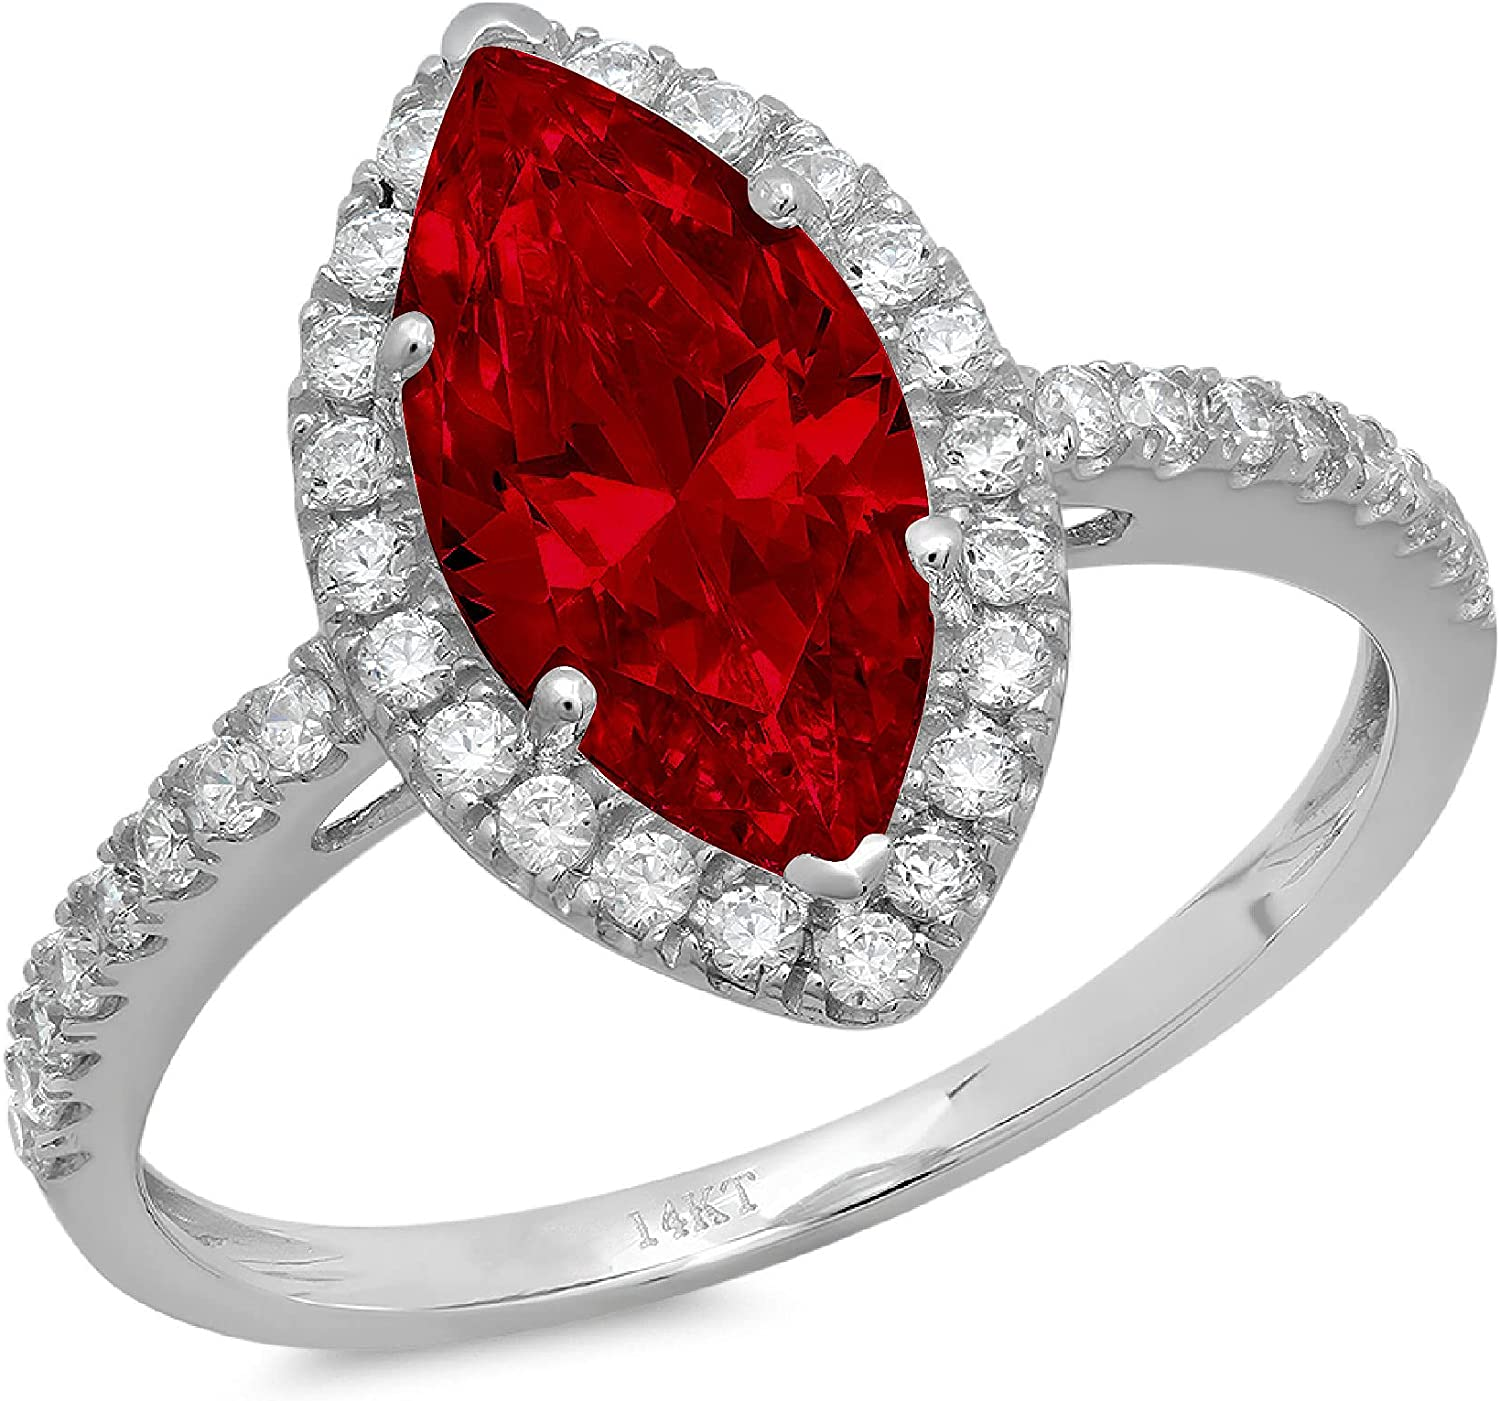 2.32ct Popular brand Brilliant Marquise Cut Solitaire Natural with Halo Accent OFFicial site